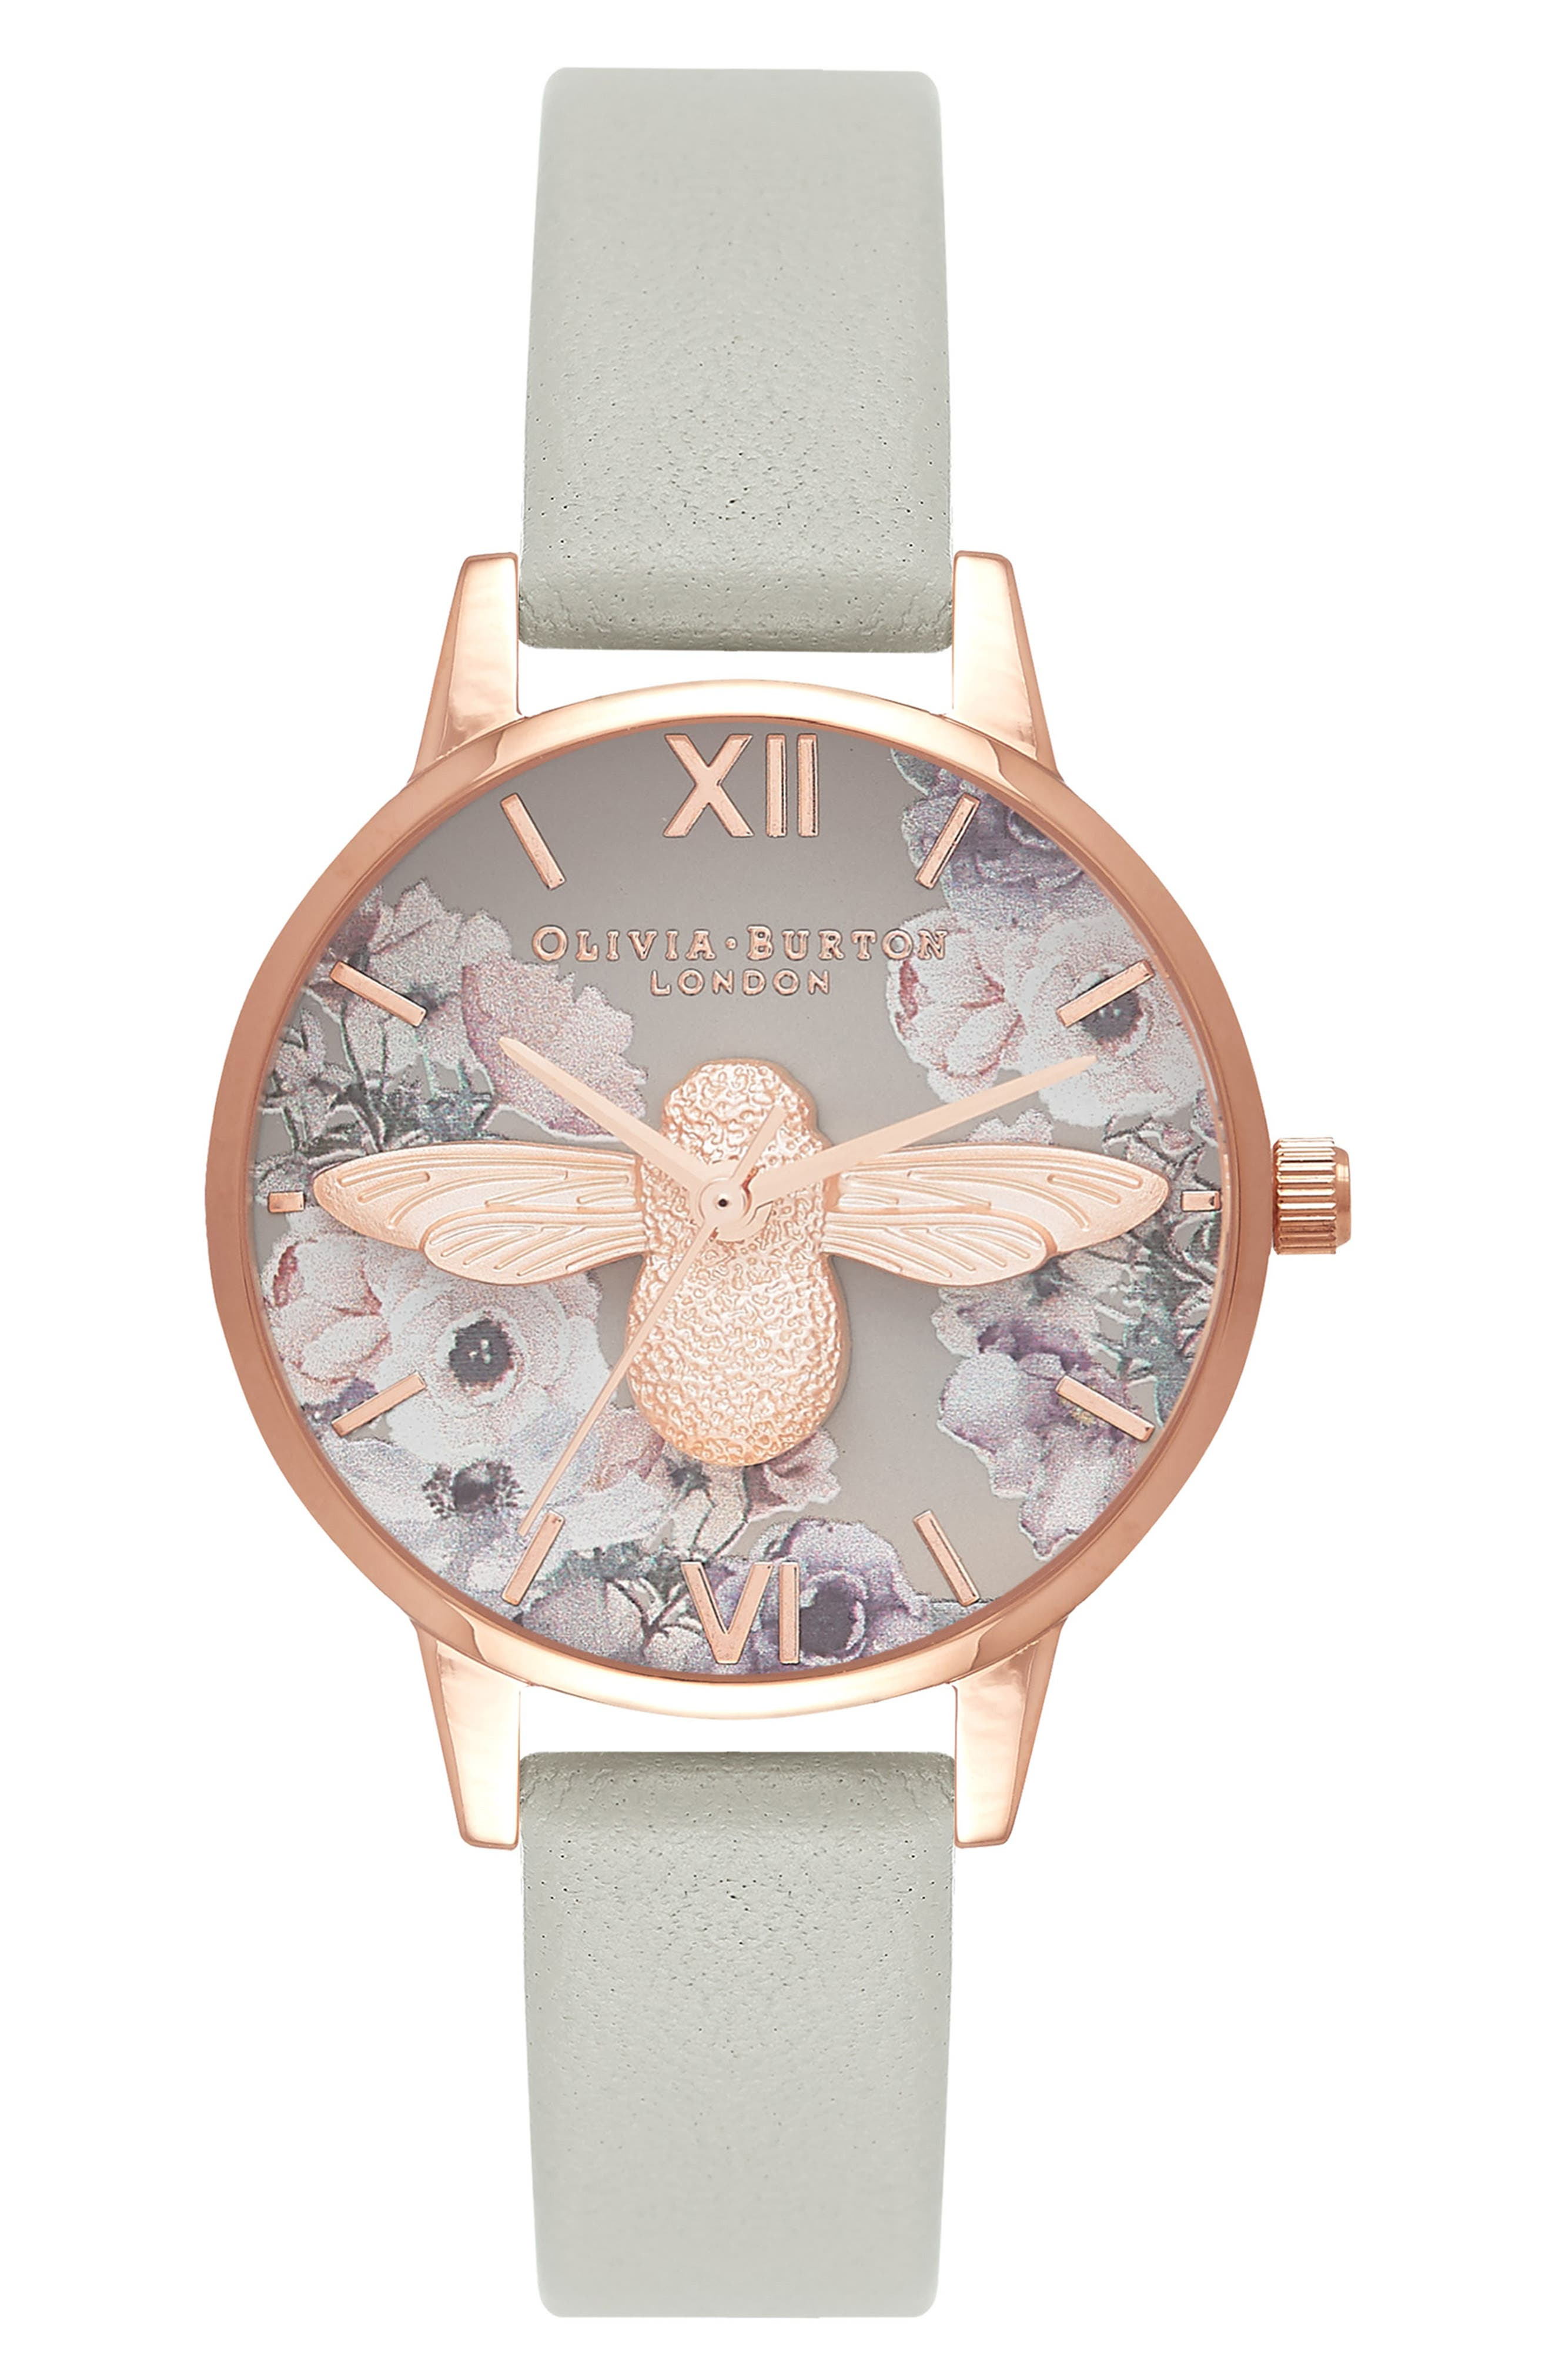 OLIVIA BURTON Watercolour Leather Strap Watch, 30Mm in Grey/ Bee/ Rose Gold